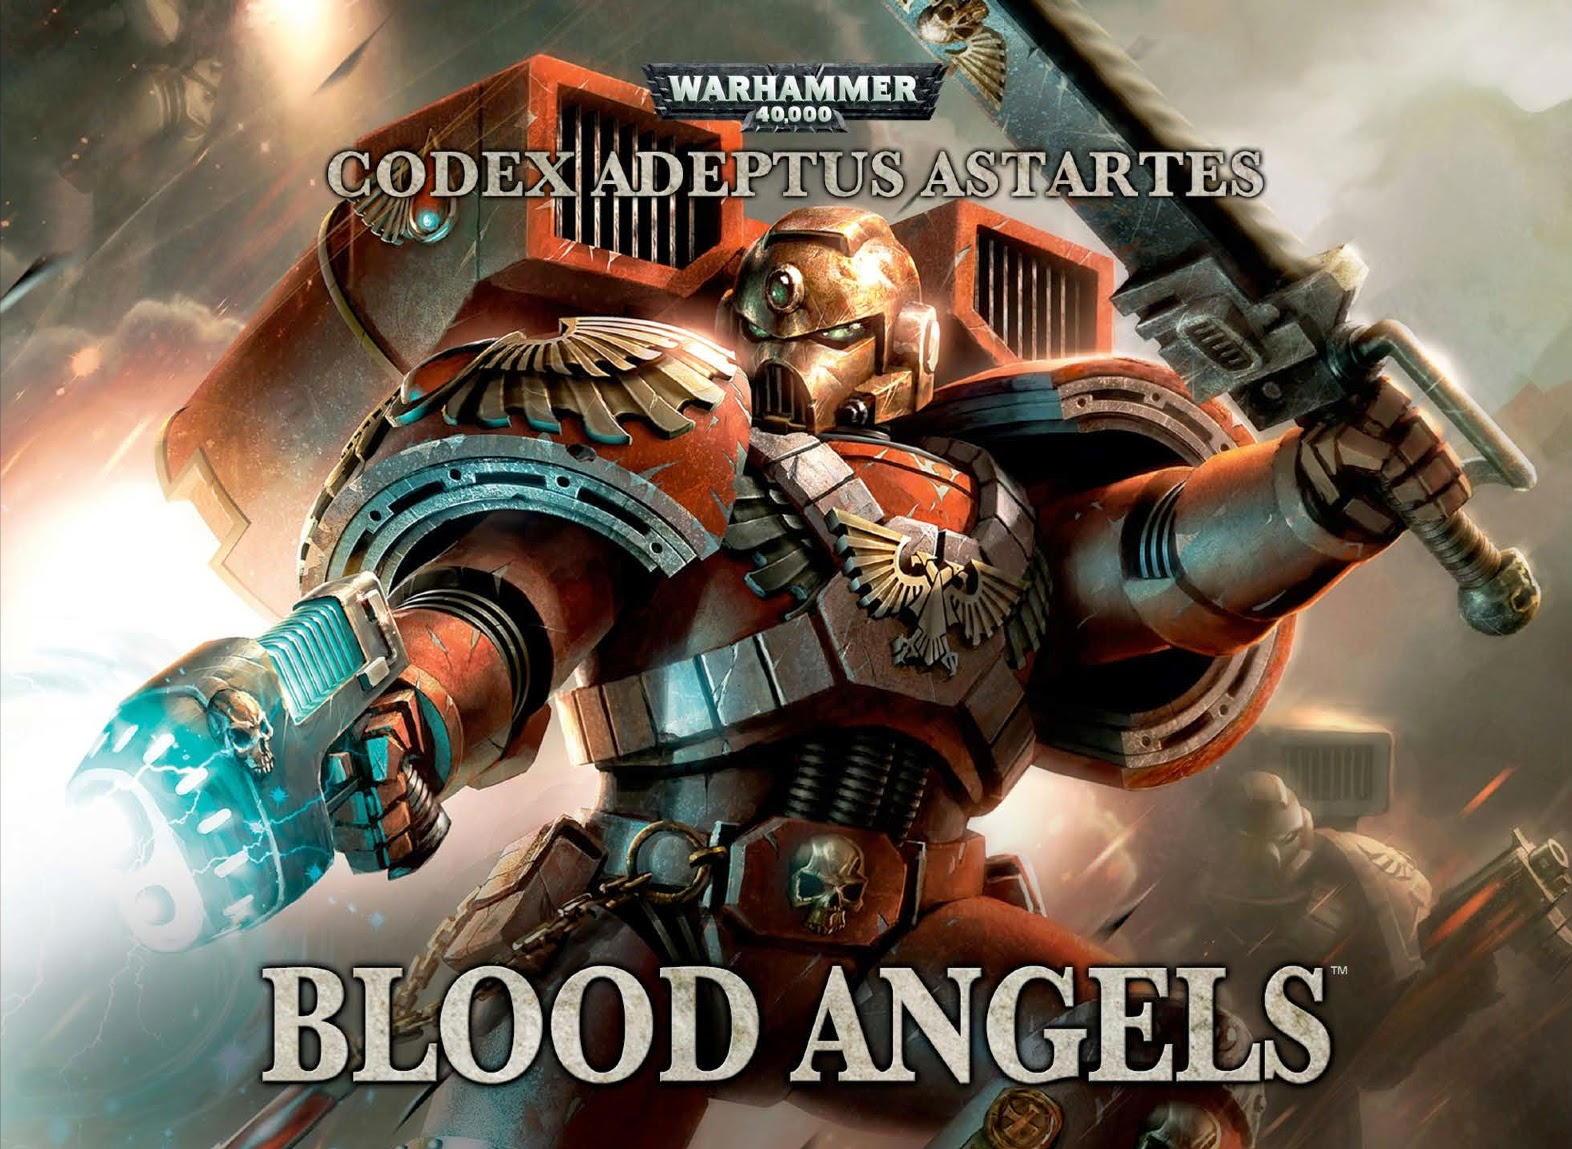 Warhammer 40k Blood Angels Codex 7th Edition Pdf